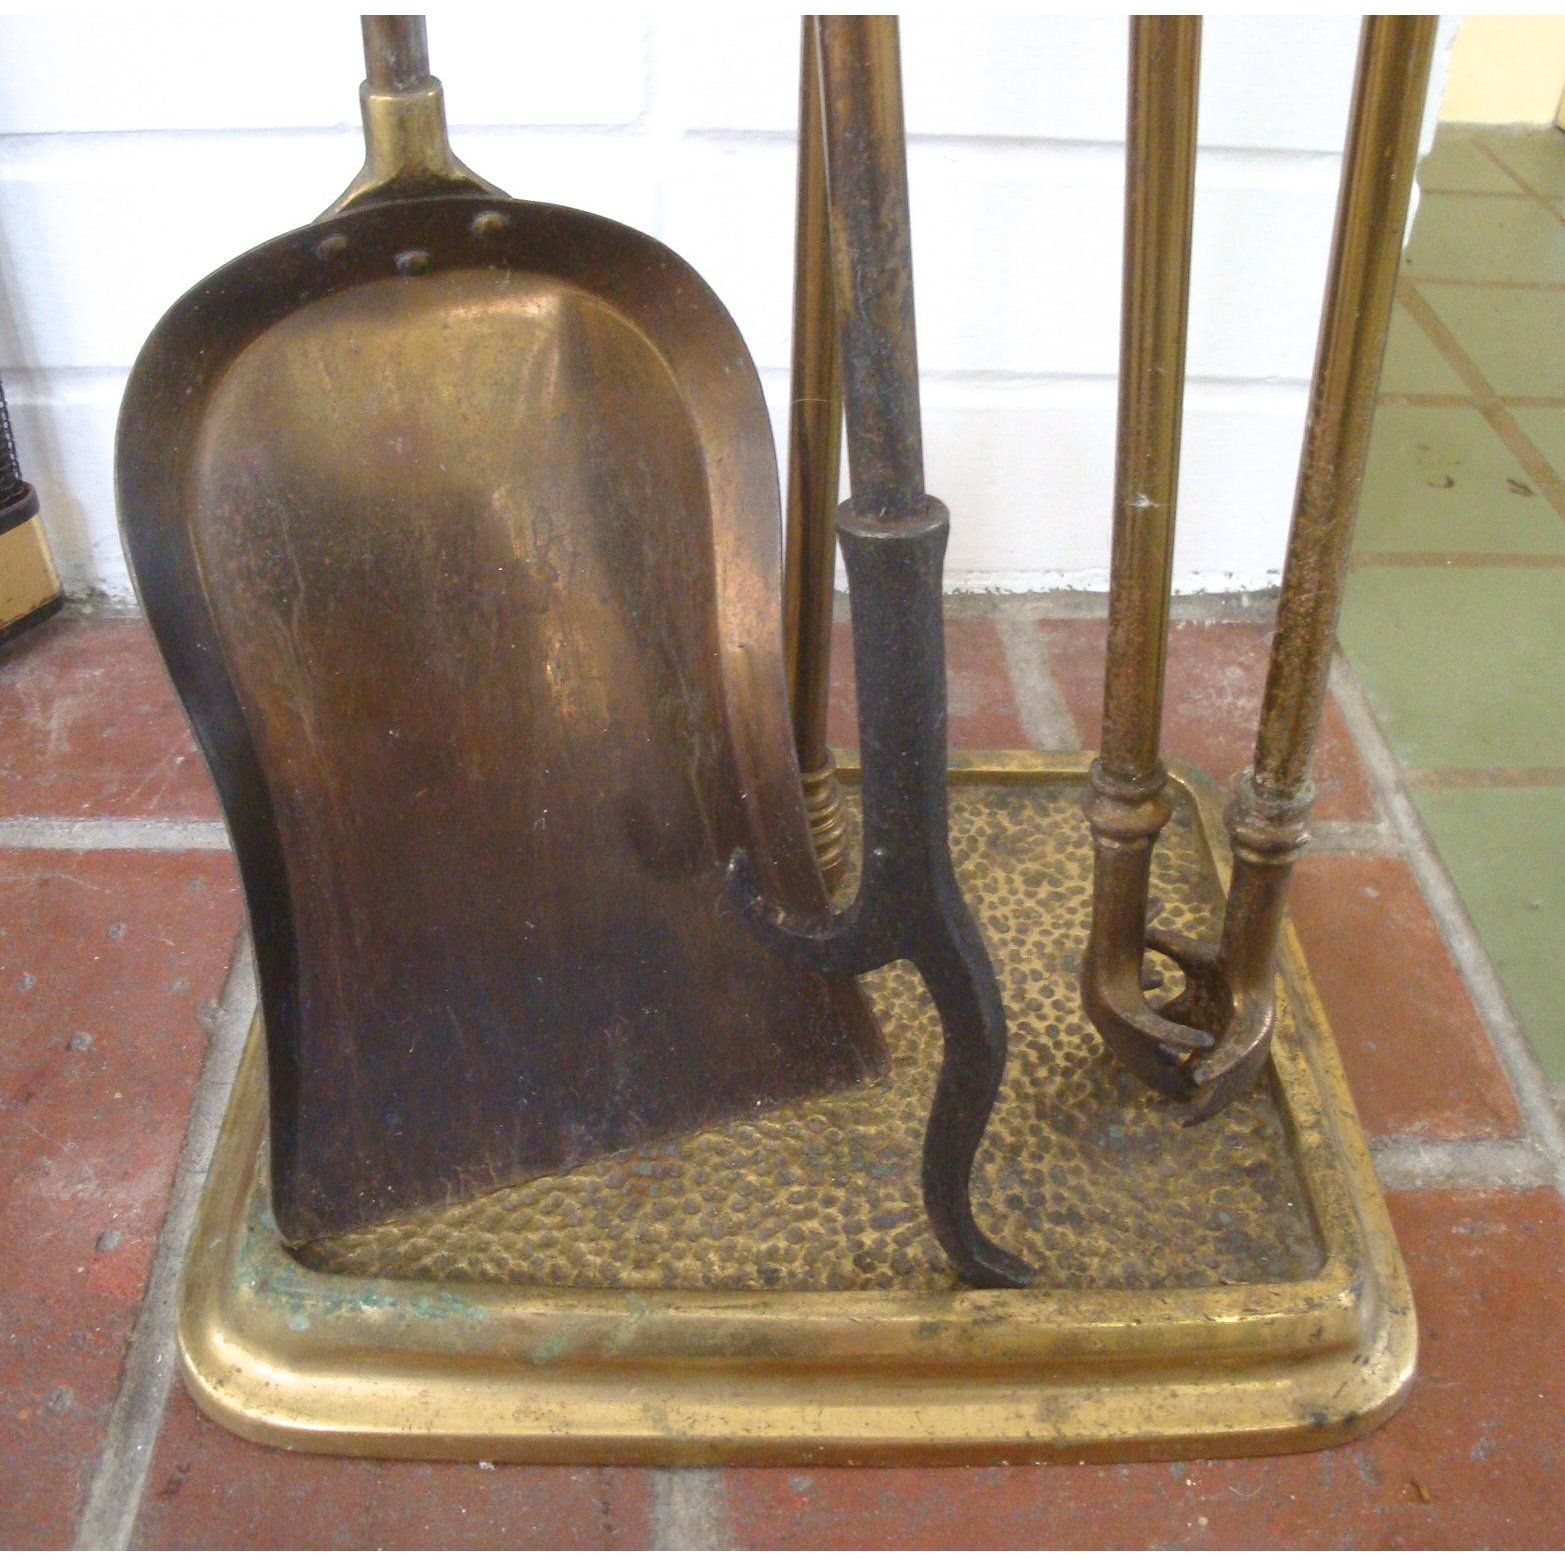 Vintage French Style Fancy Brass Fireplace Tool Set For Sale Image 4 Of 5 Fireplace Tools Fireplace Tool Set Tool Set